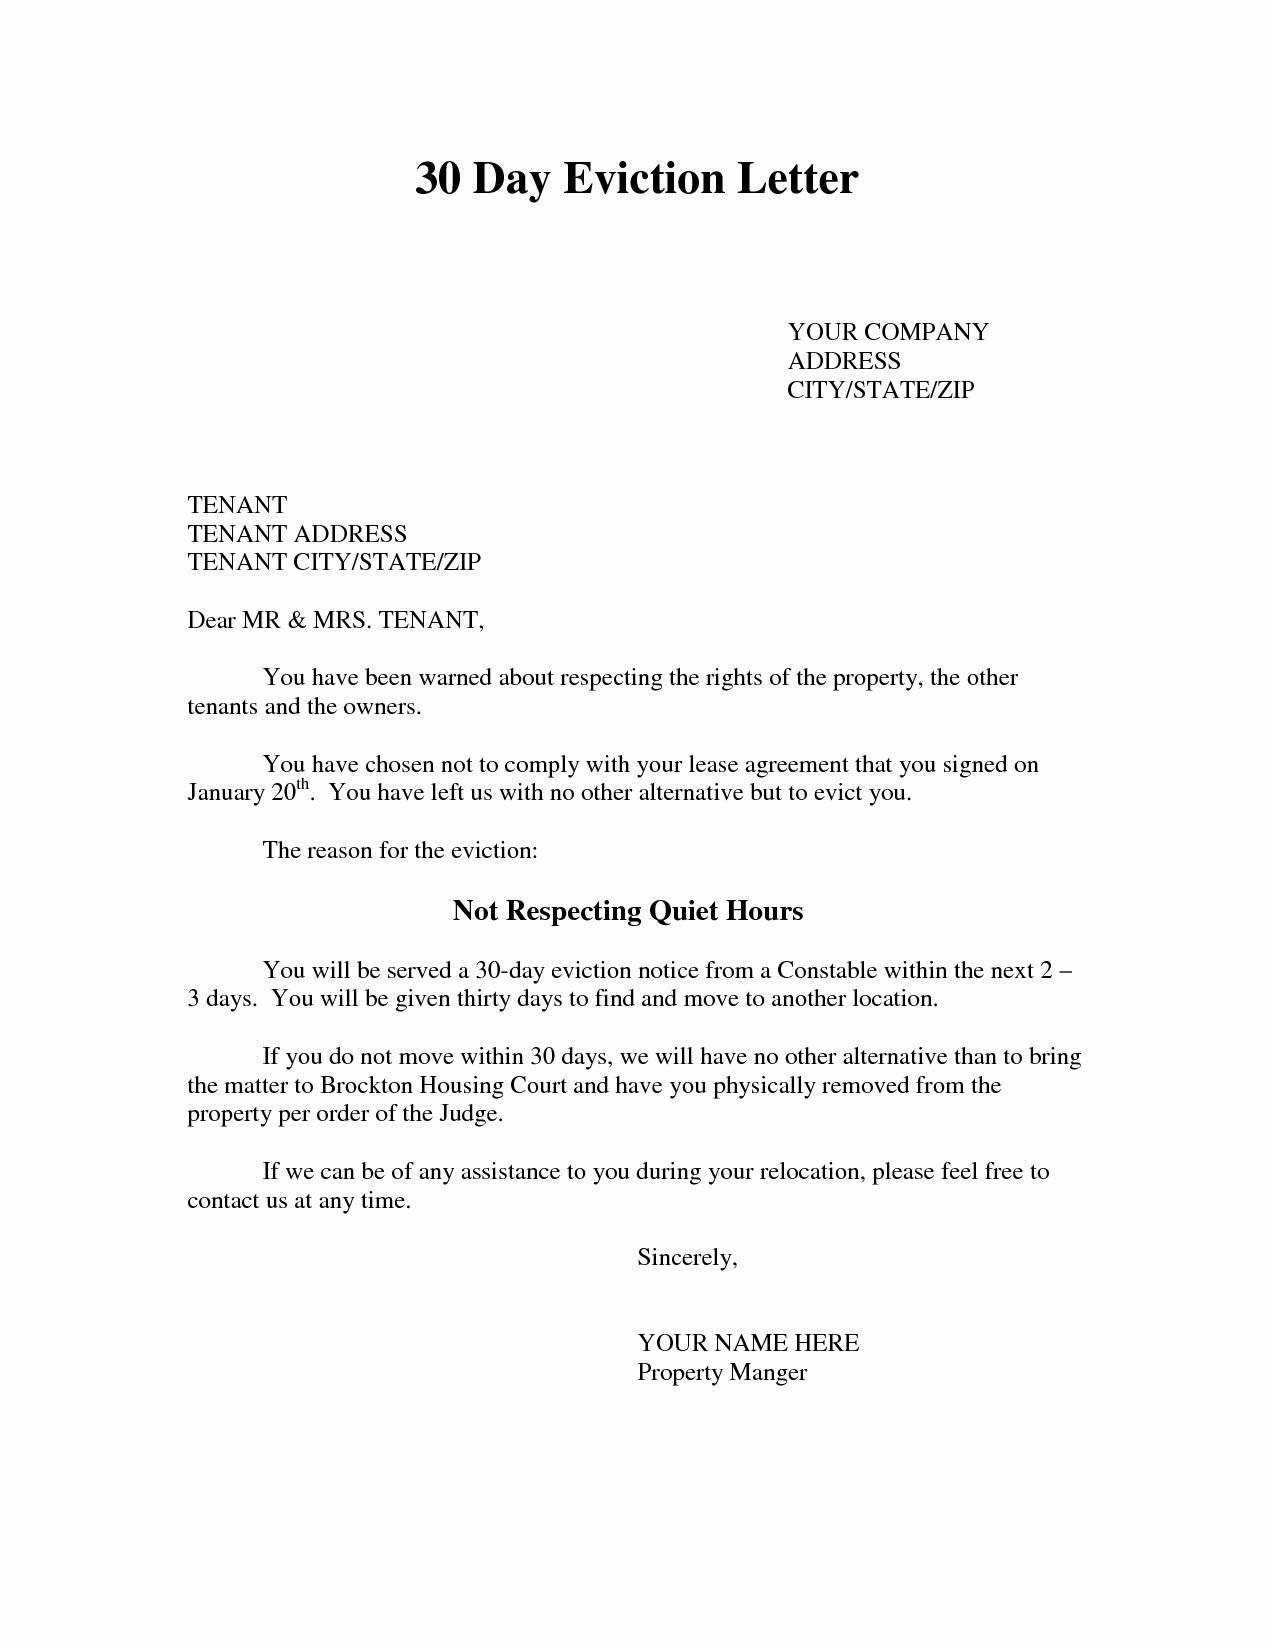 Free Tenant Eviction Letter Template - Tenant Eviction Letter Template Fresh Eviction Notice Template